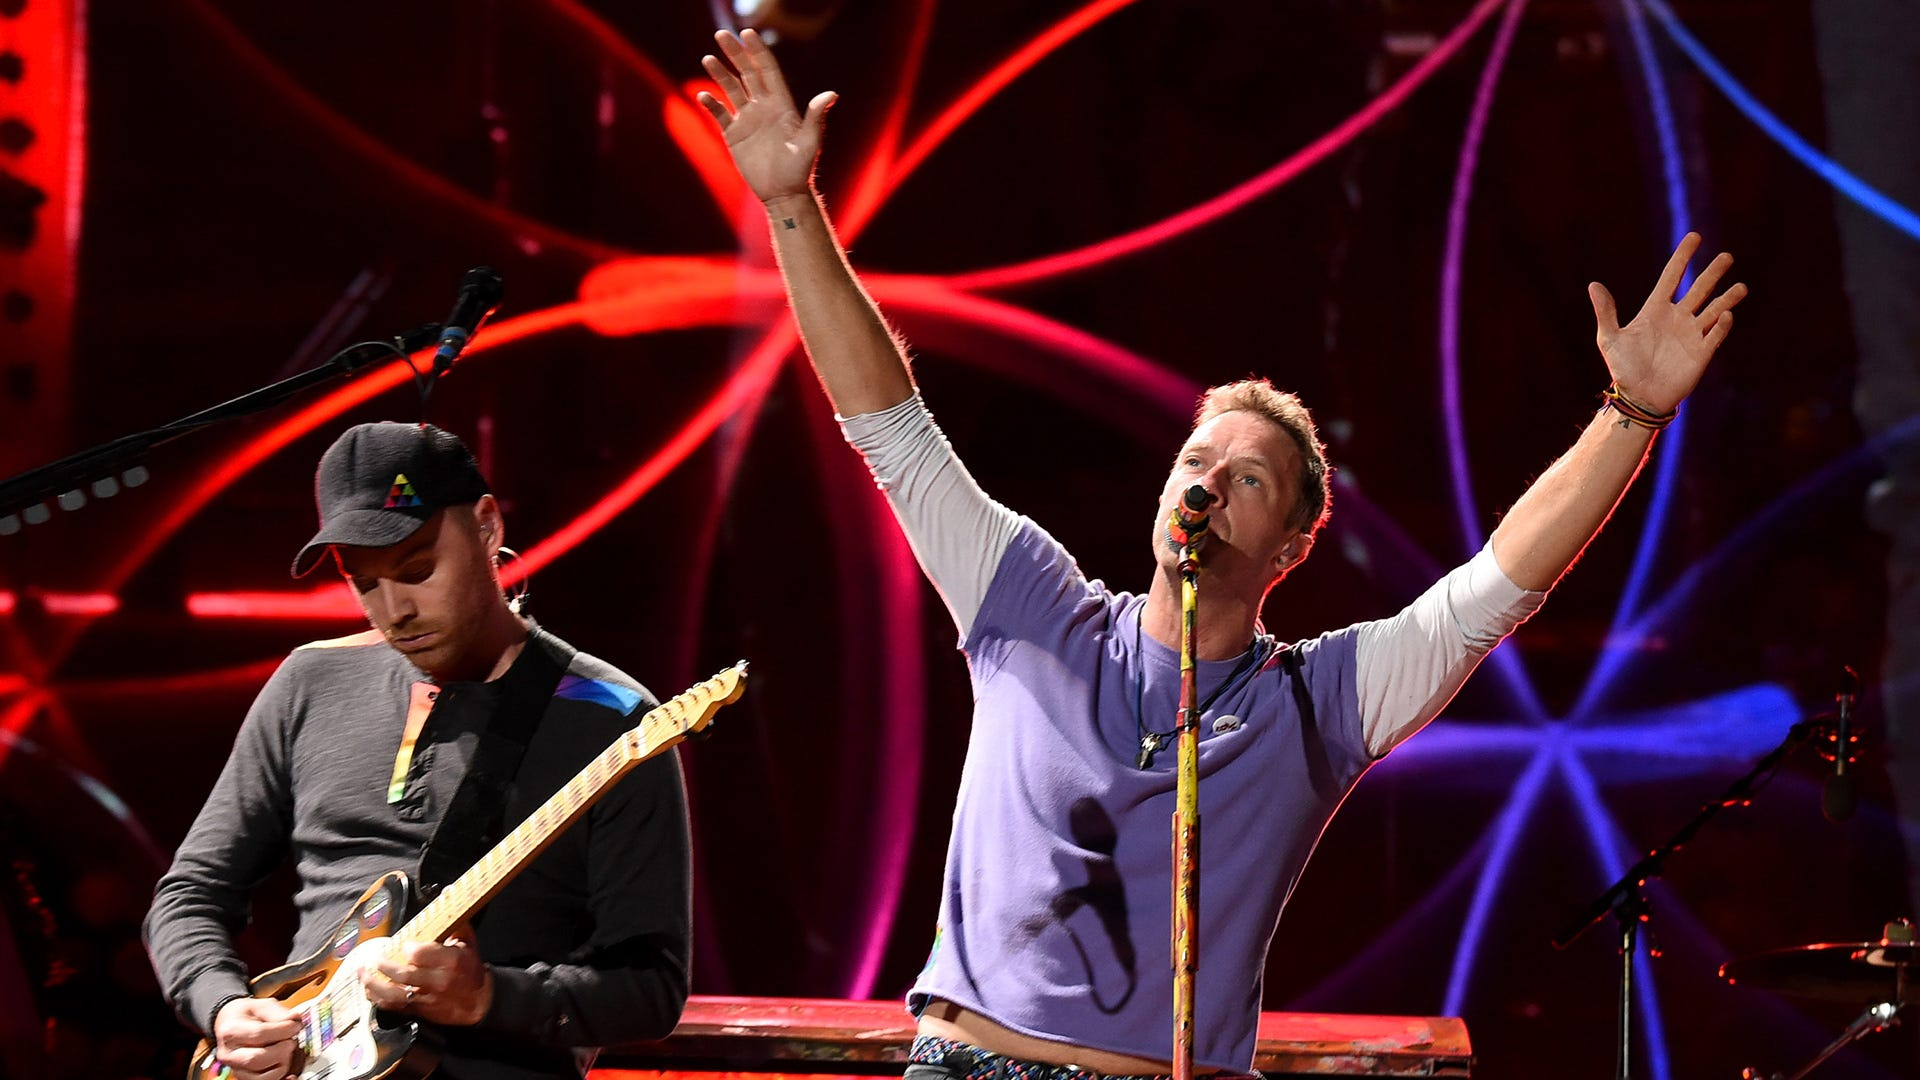 Coldplay will provide fans with an immersive 'Intergalactic Audio-Visual' experience with 'The Atmospheres'